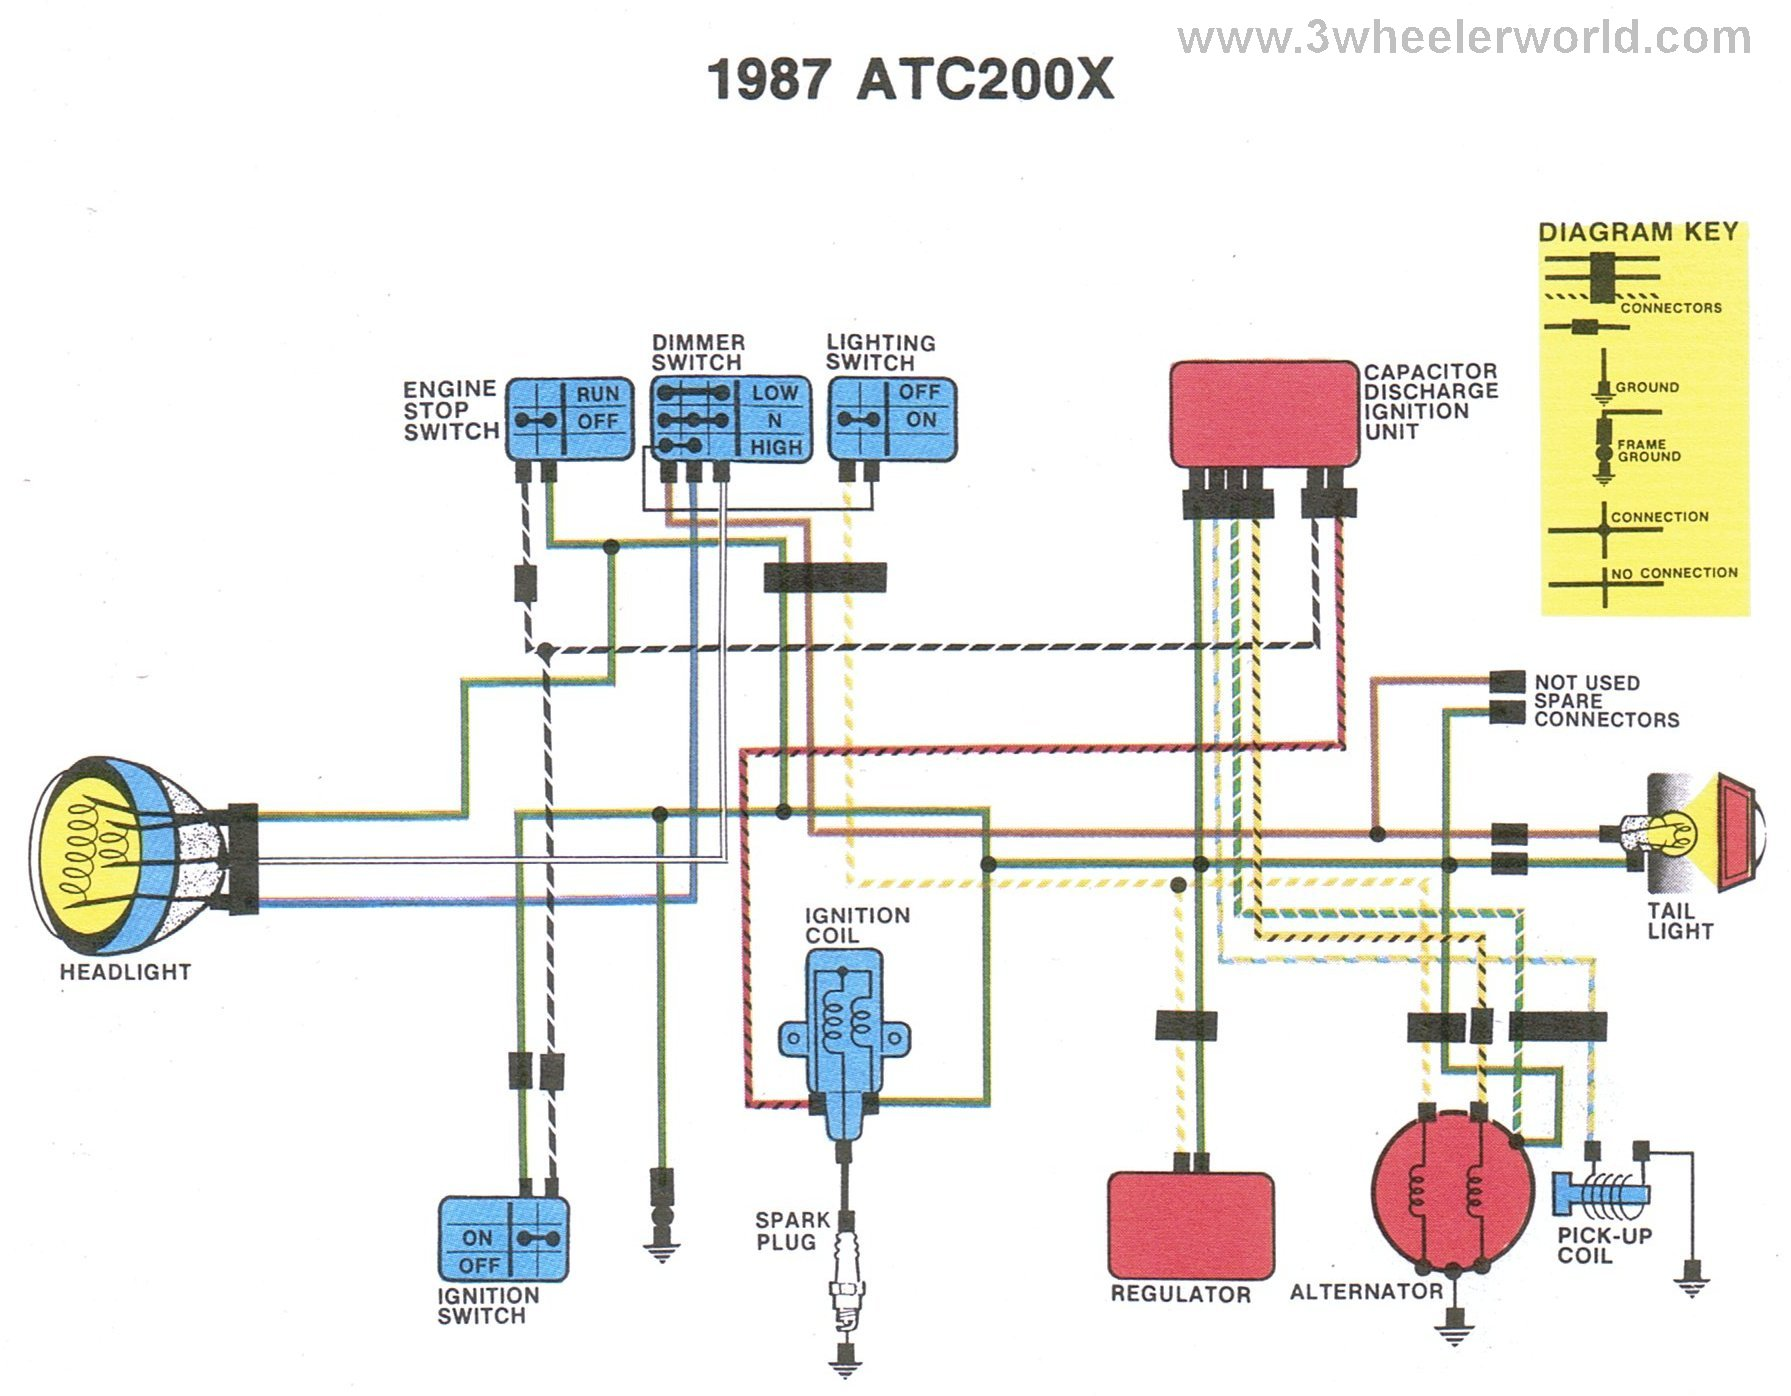 ATC200Xx87 3 wheeler world tech help honda wiring diagrams honda trx200 wiring diagram at edmiracle.co